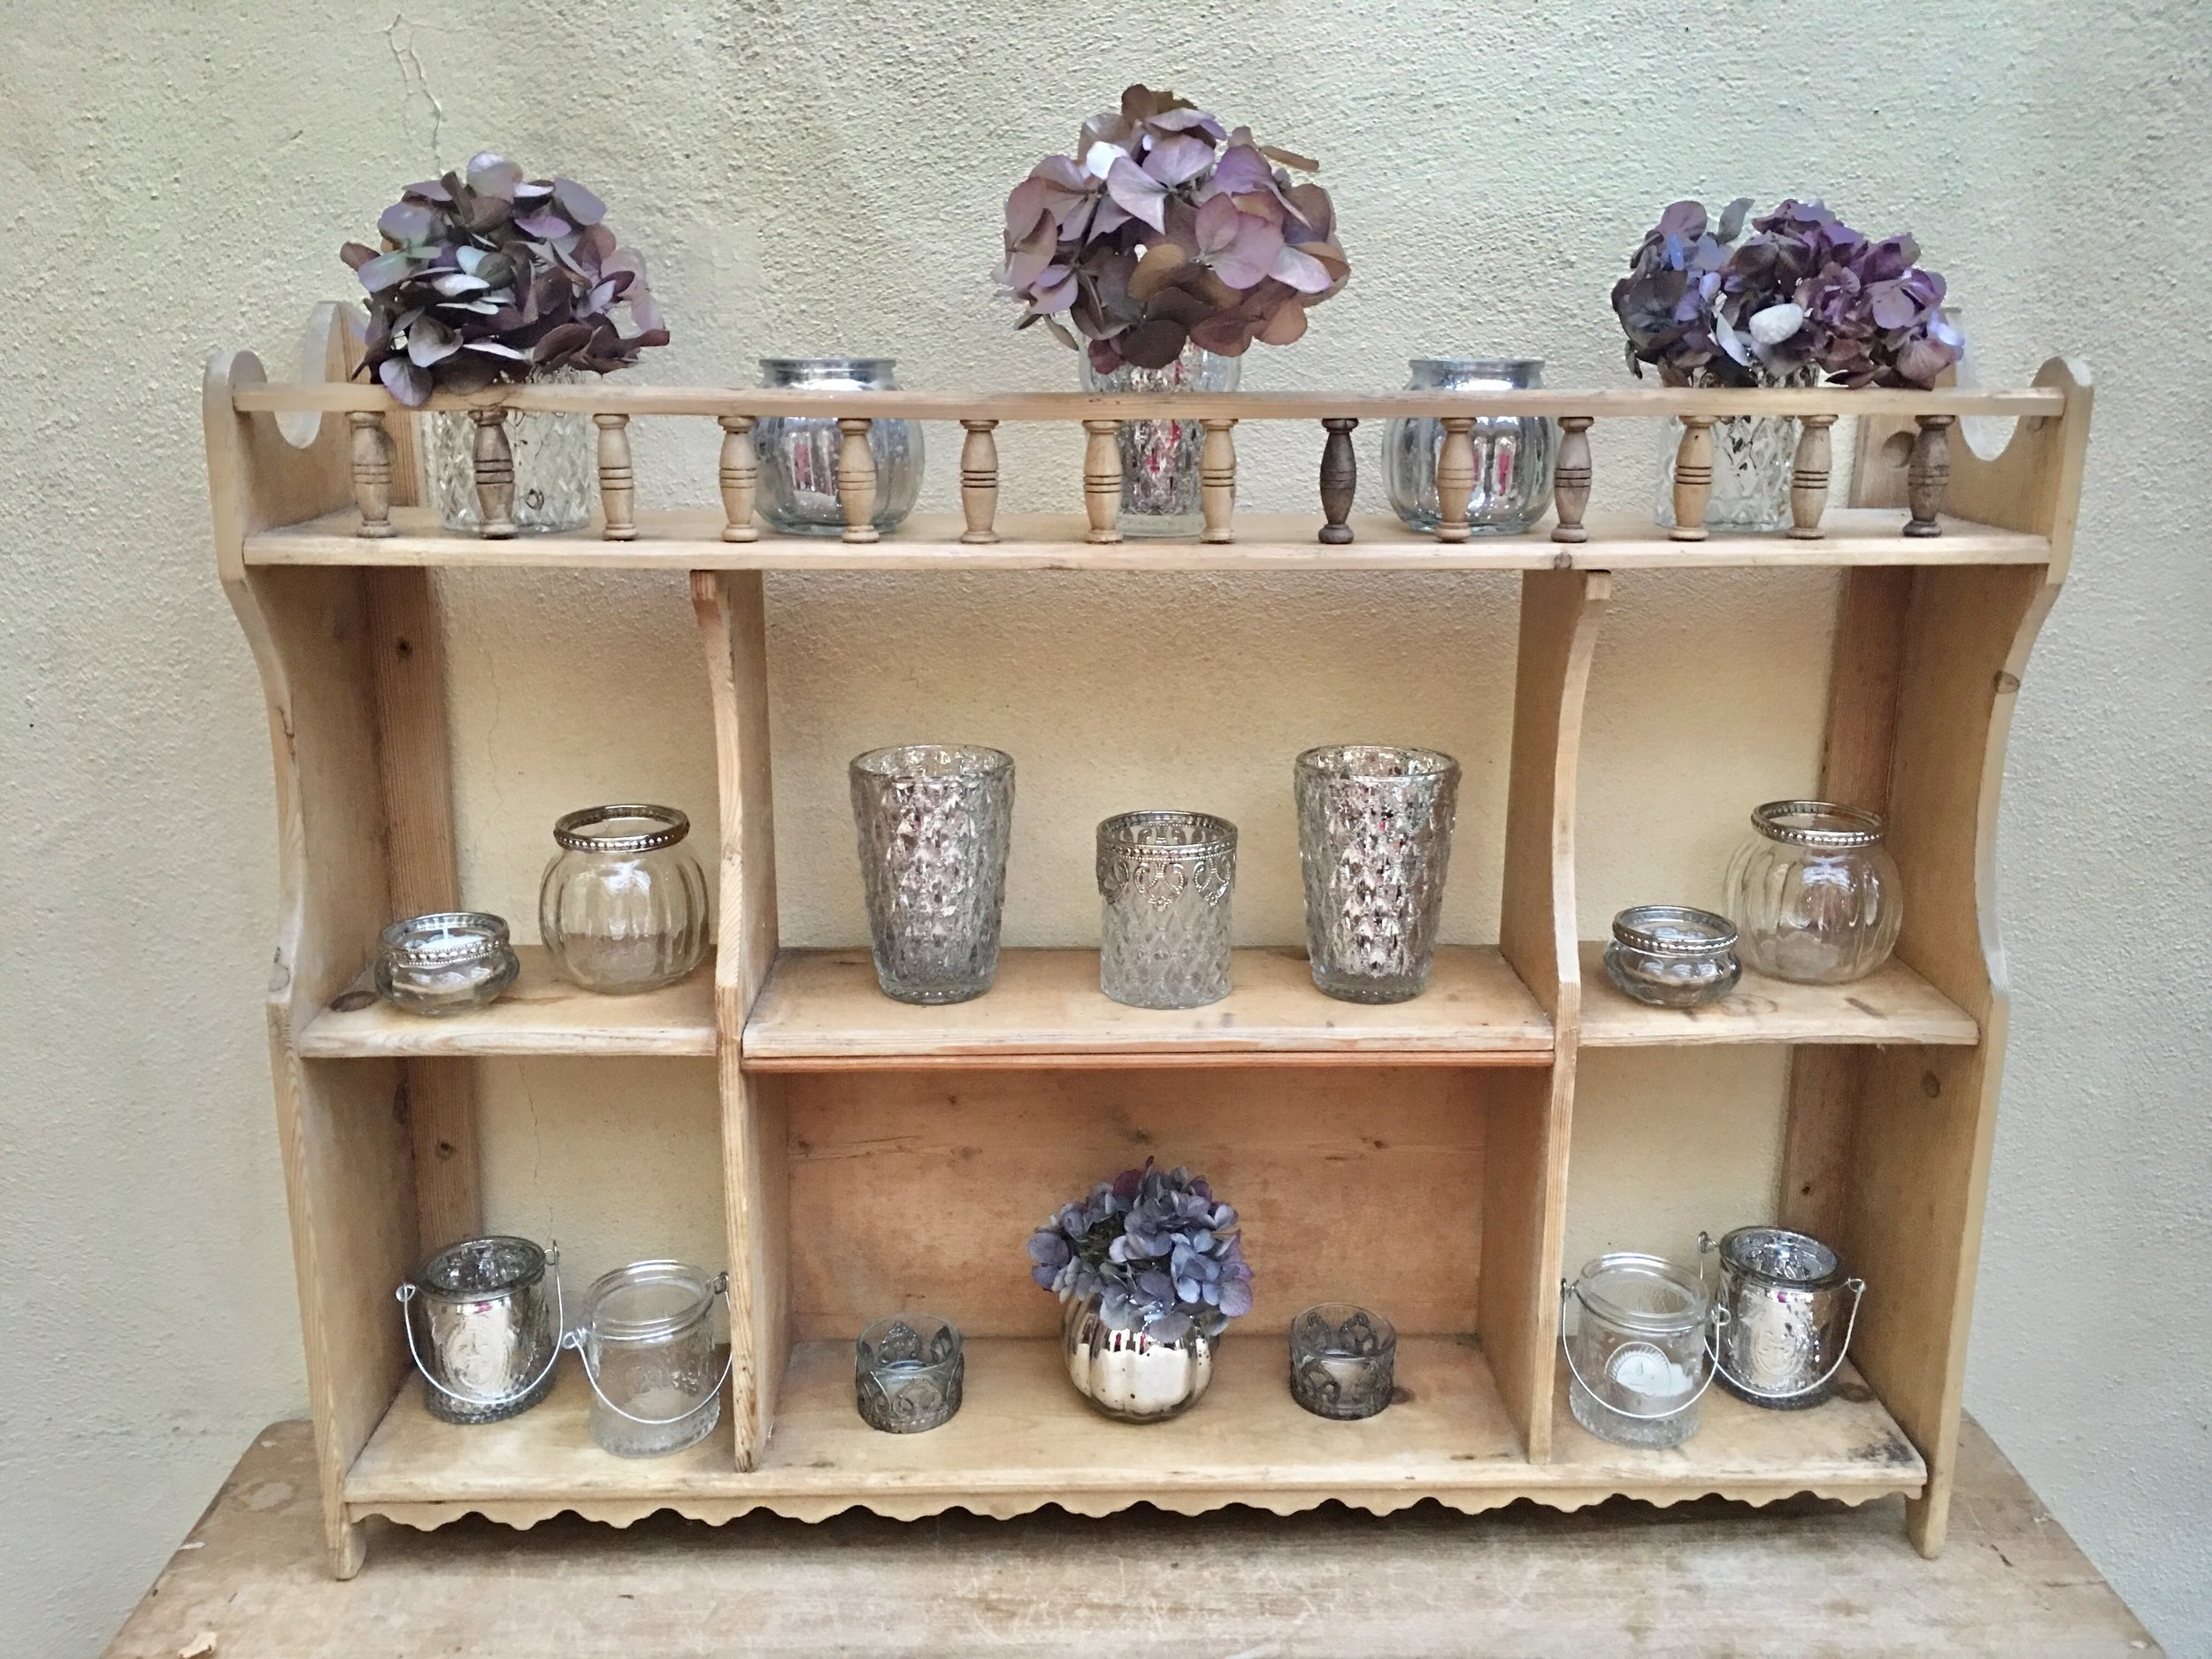 Selection of silver tea lights from 50p